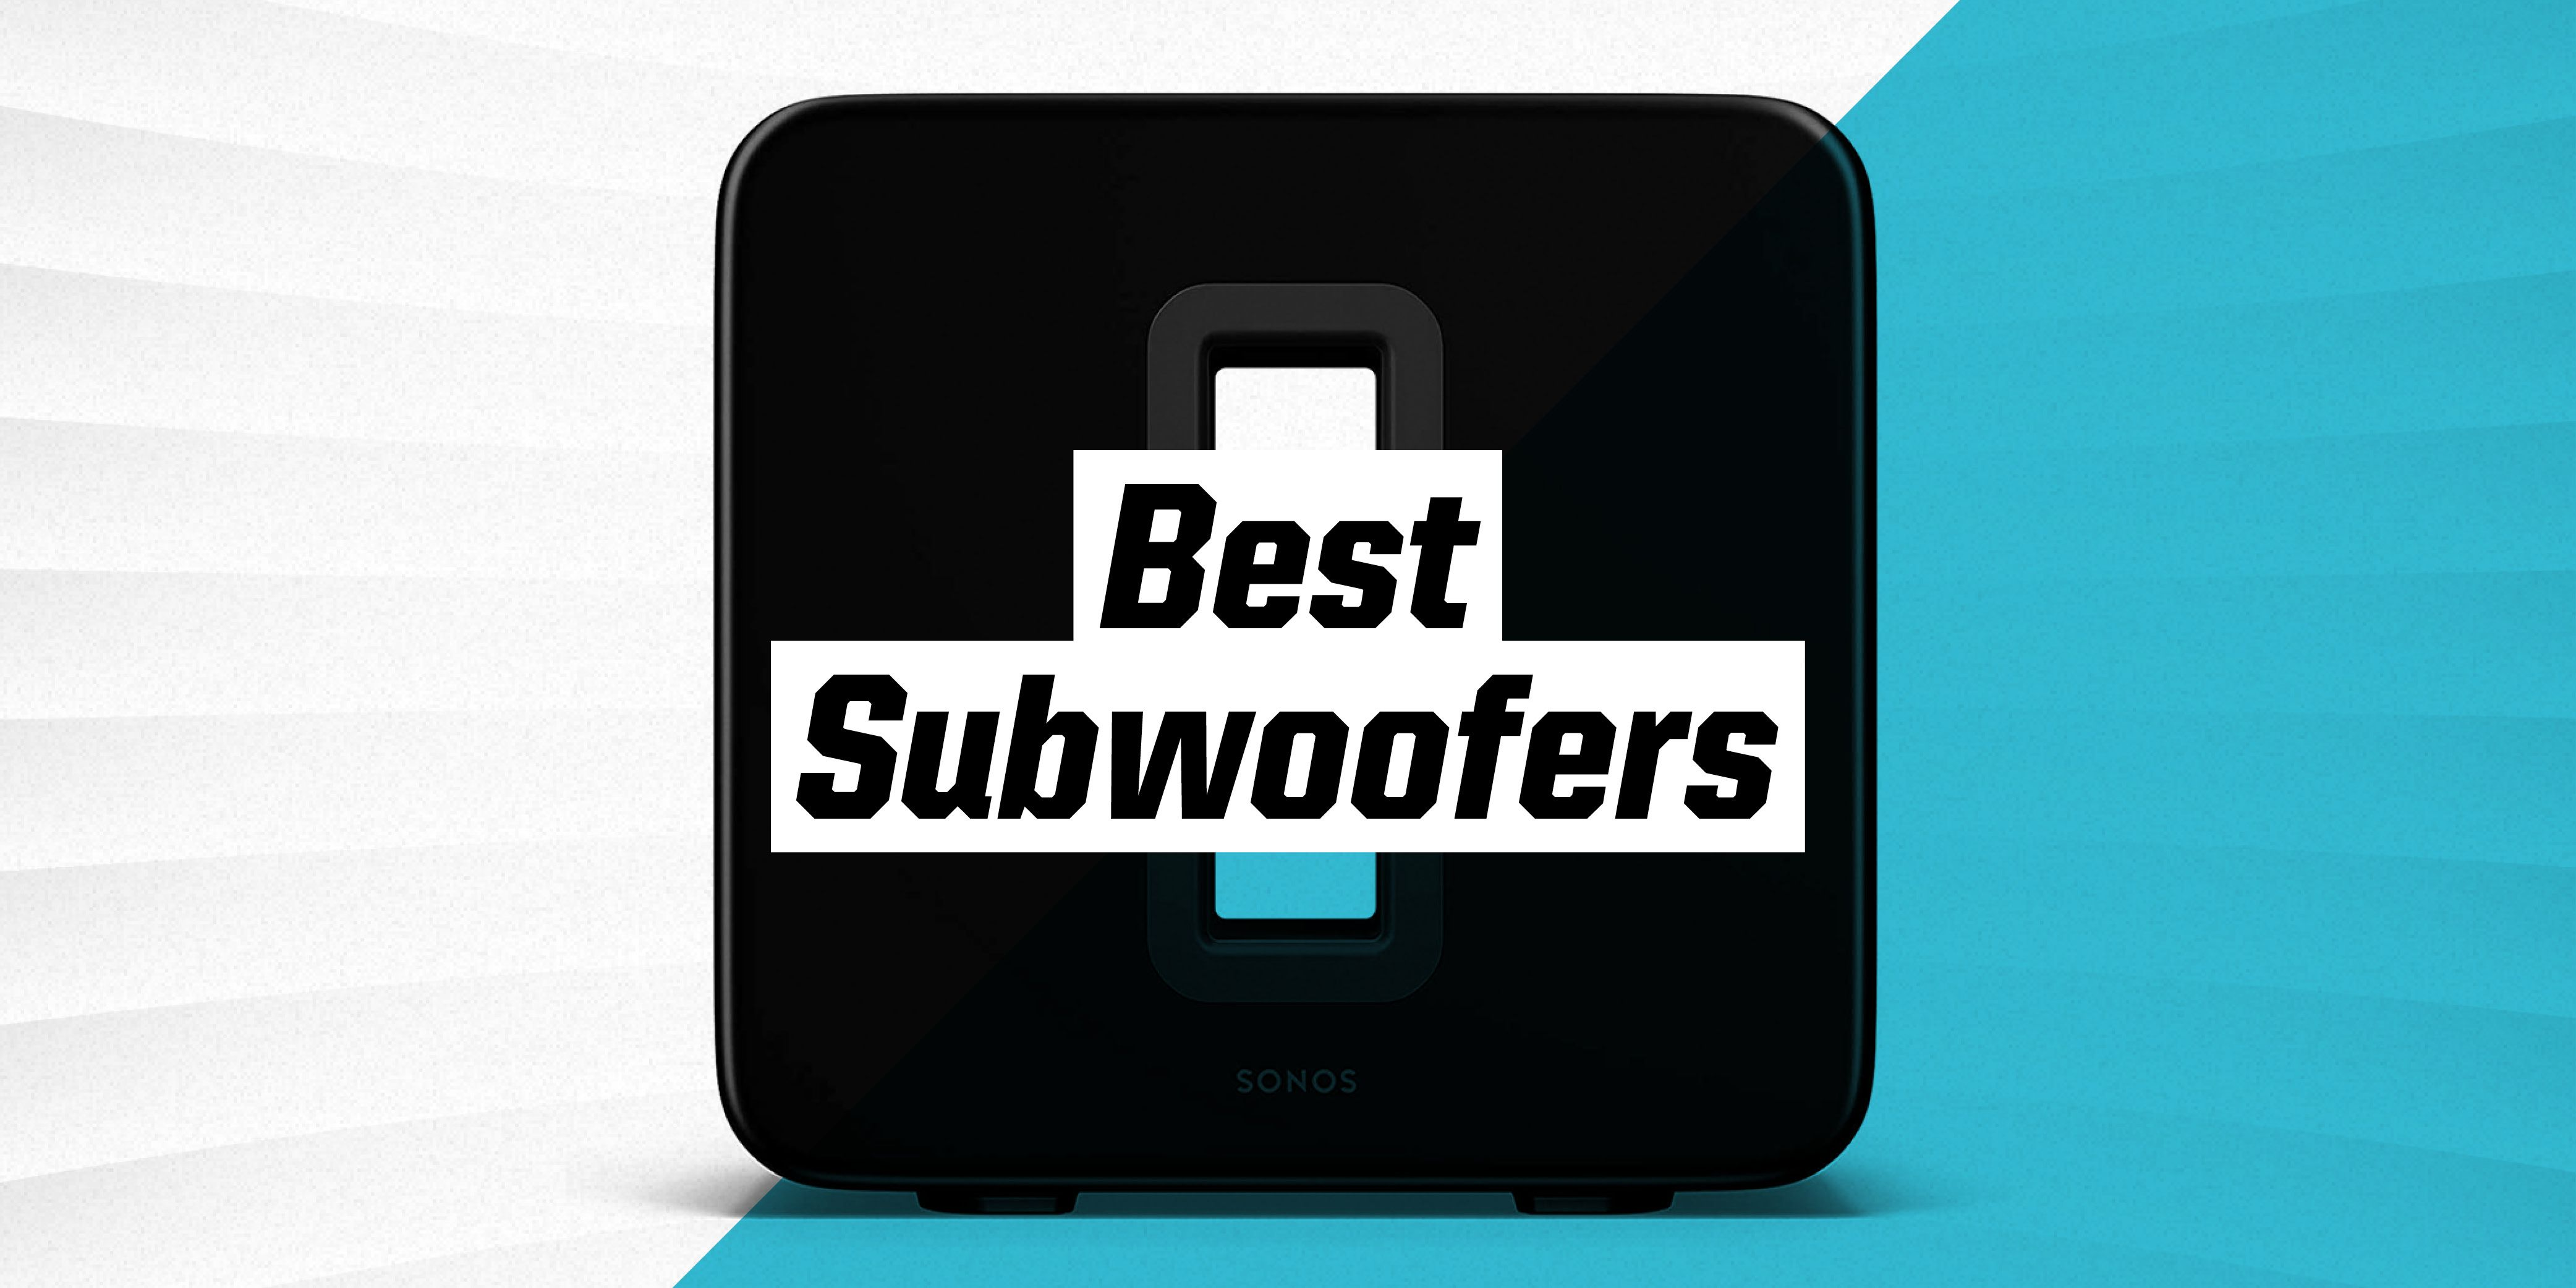 The Best Subwoofers for Your Home Theater